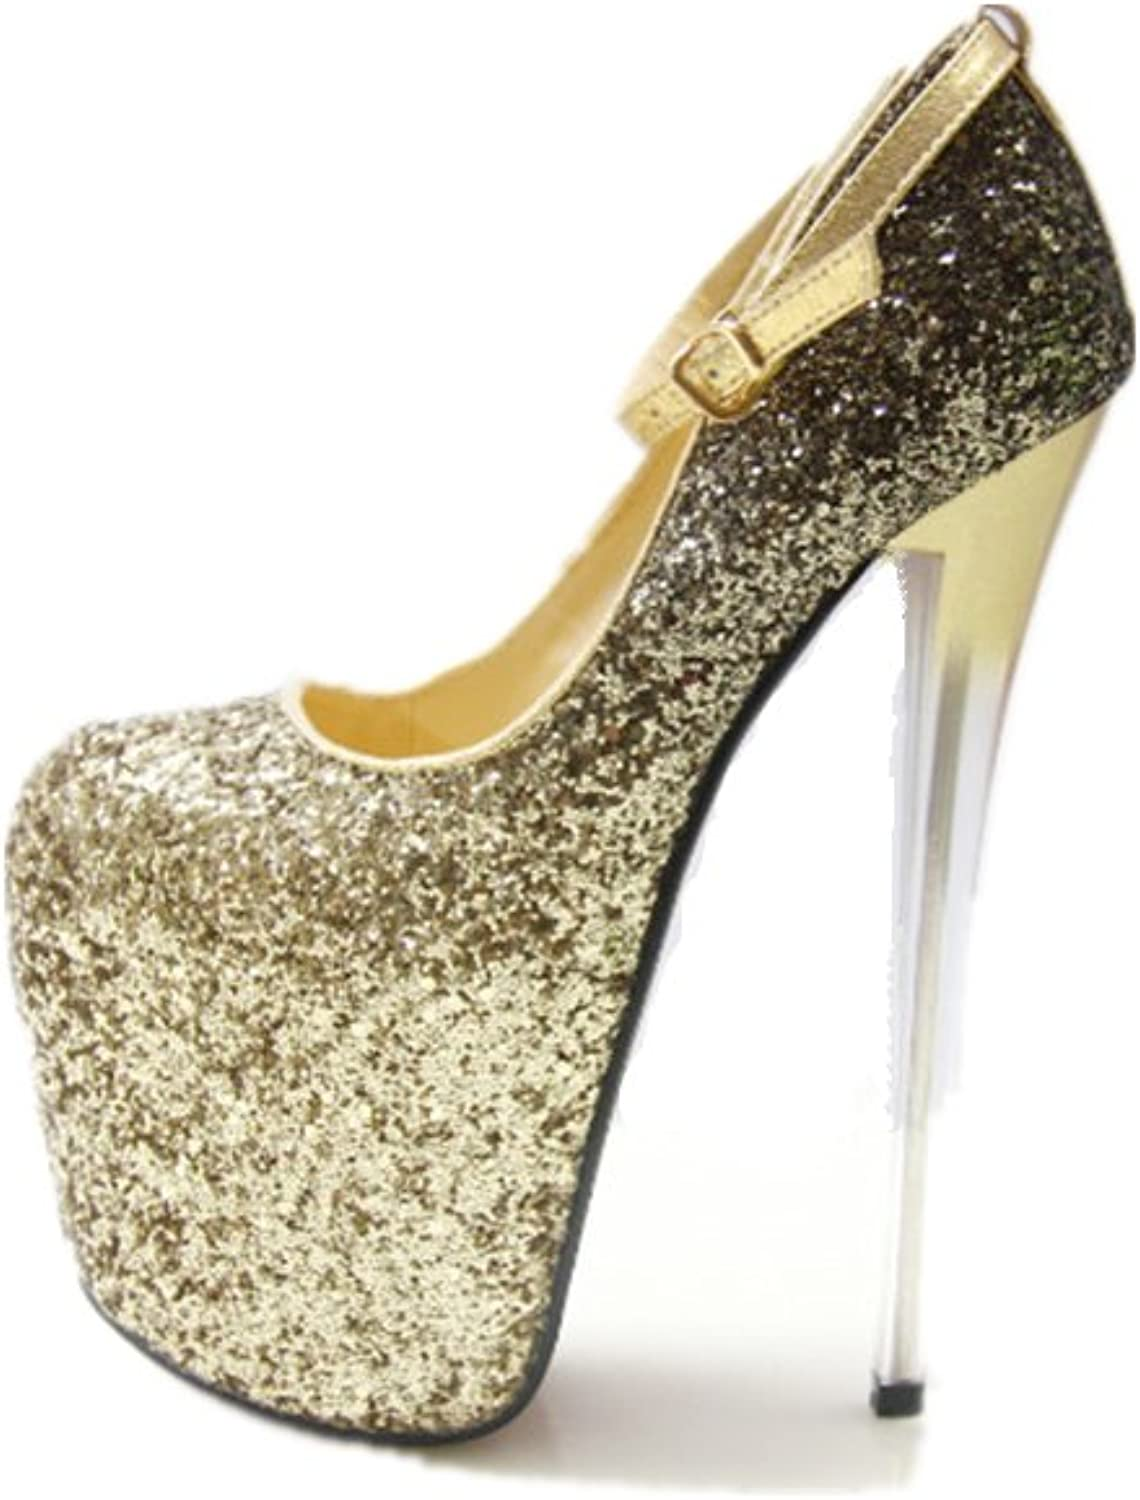 Women's Sexy Sequined Peep Toe Platform Buckle Stiletto High Heels Sandals with Ankle Straps